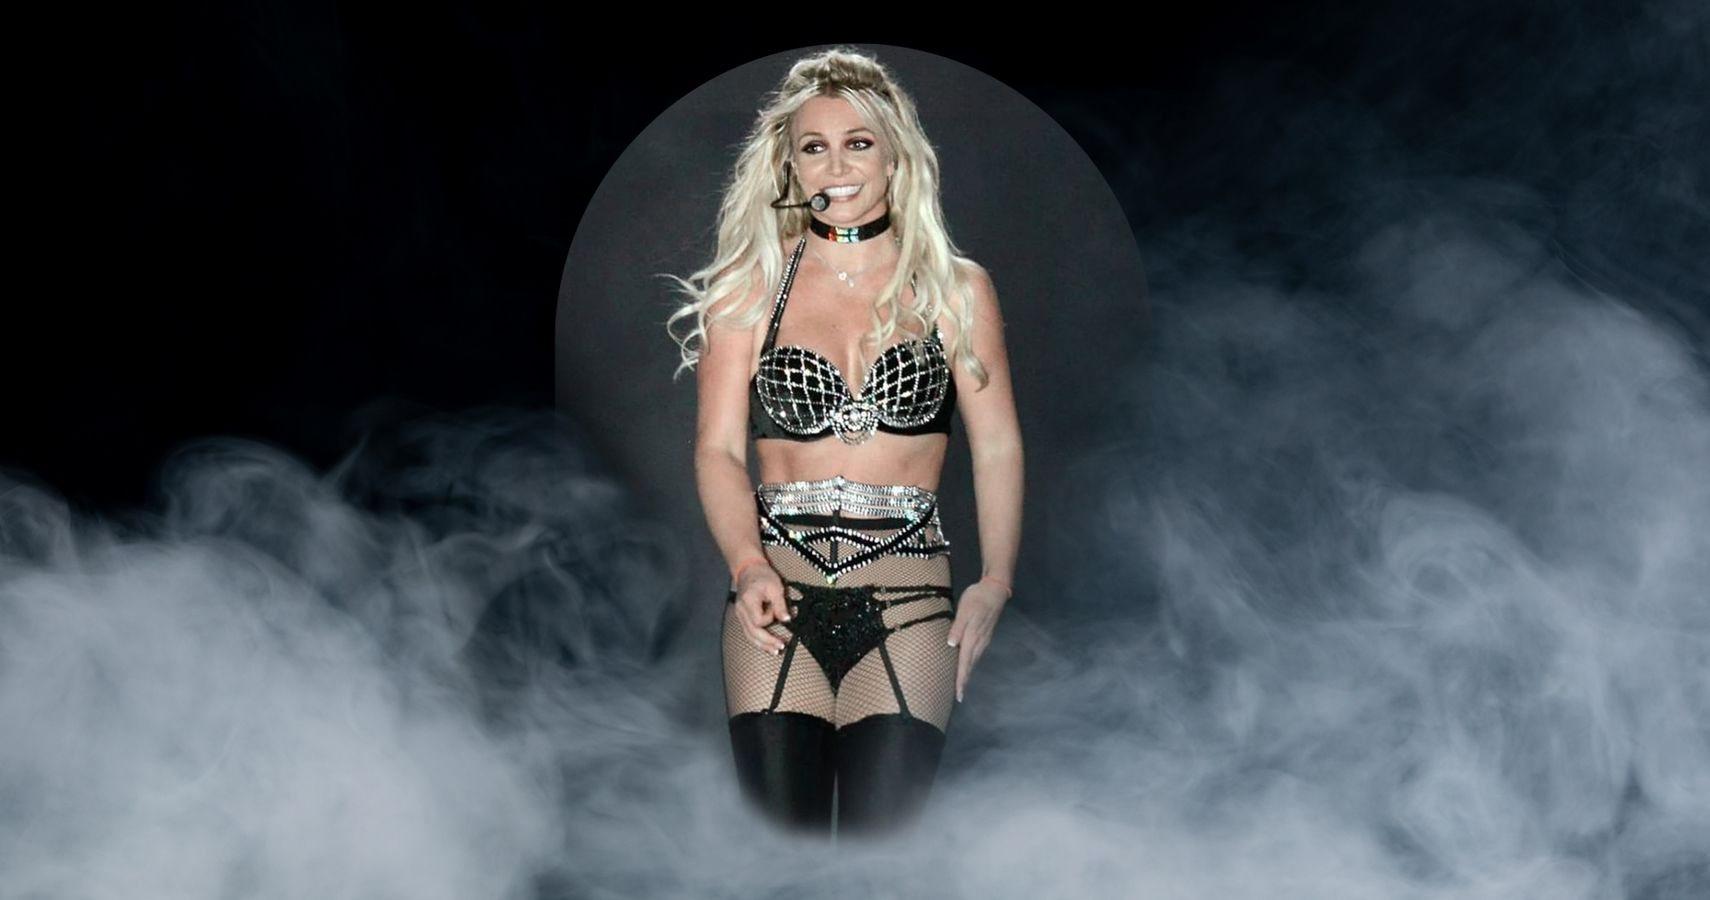 Britney Spears May Never Perform Again As Long As Her Father Is Her Conservator